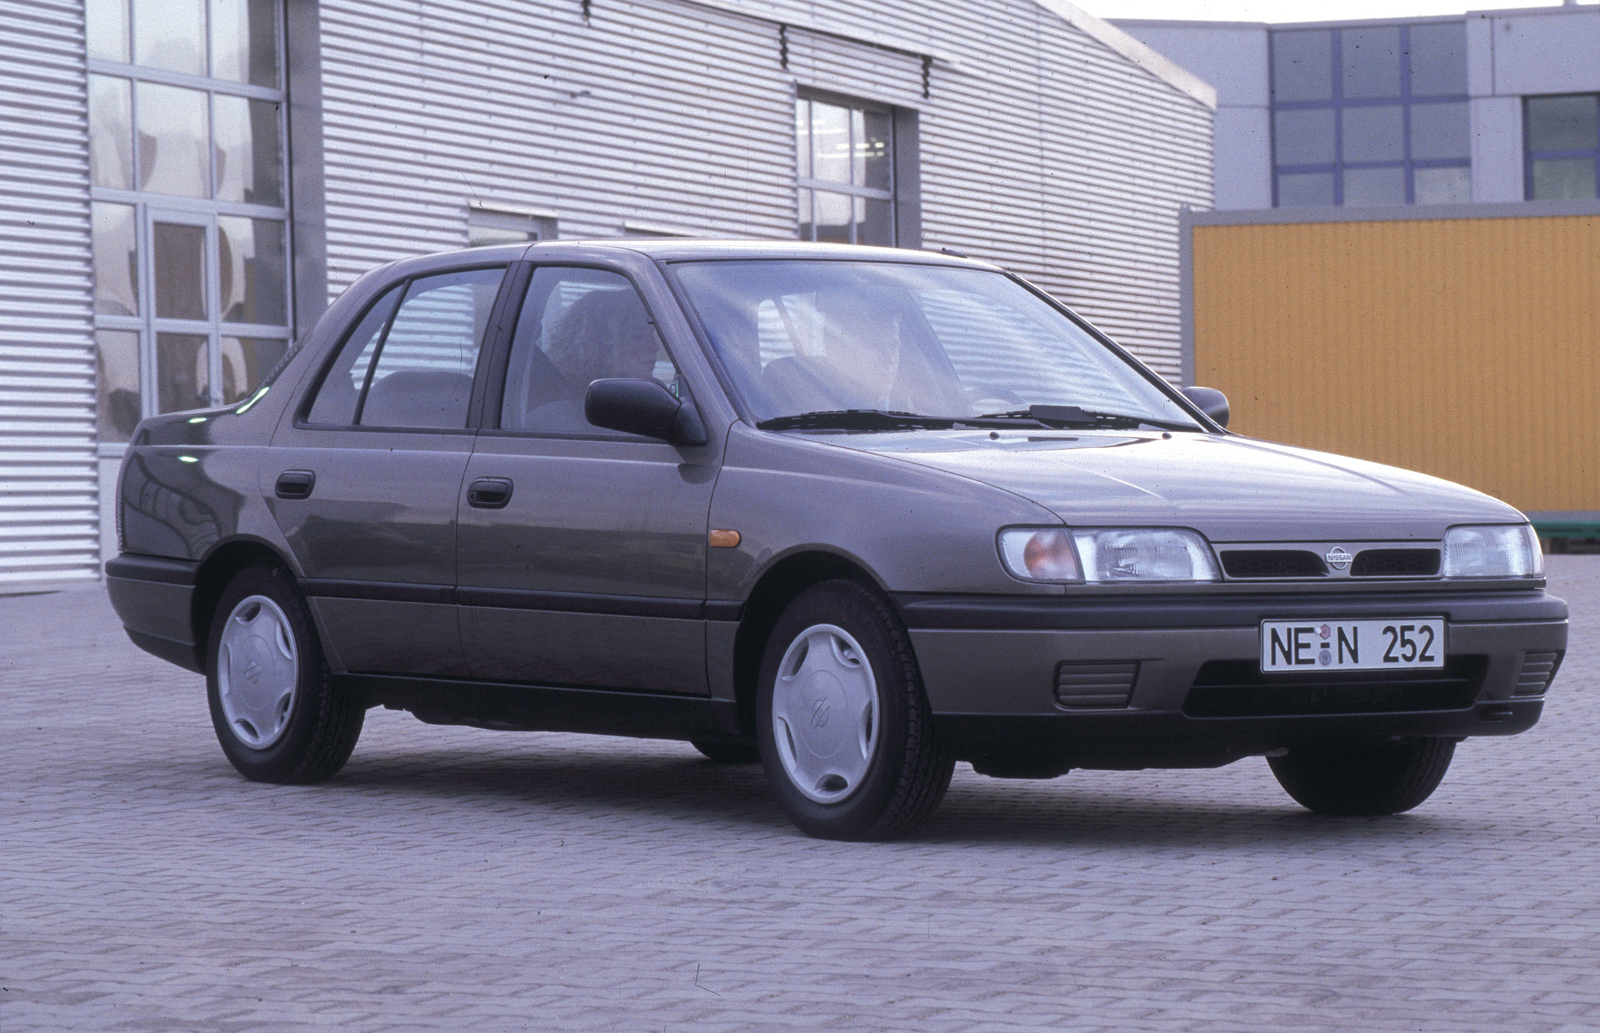 1999 Nissan Sunny Photos  Informations  Articles